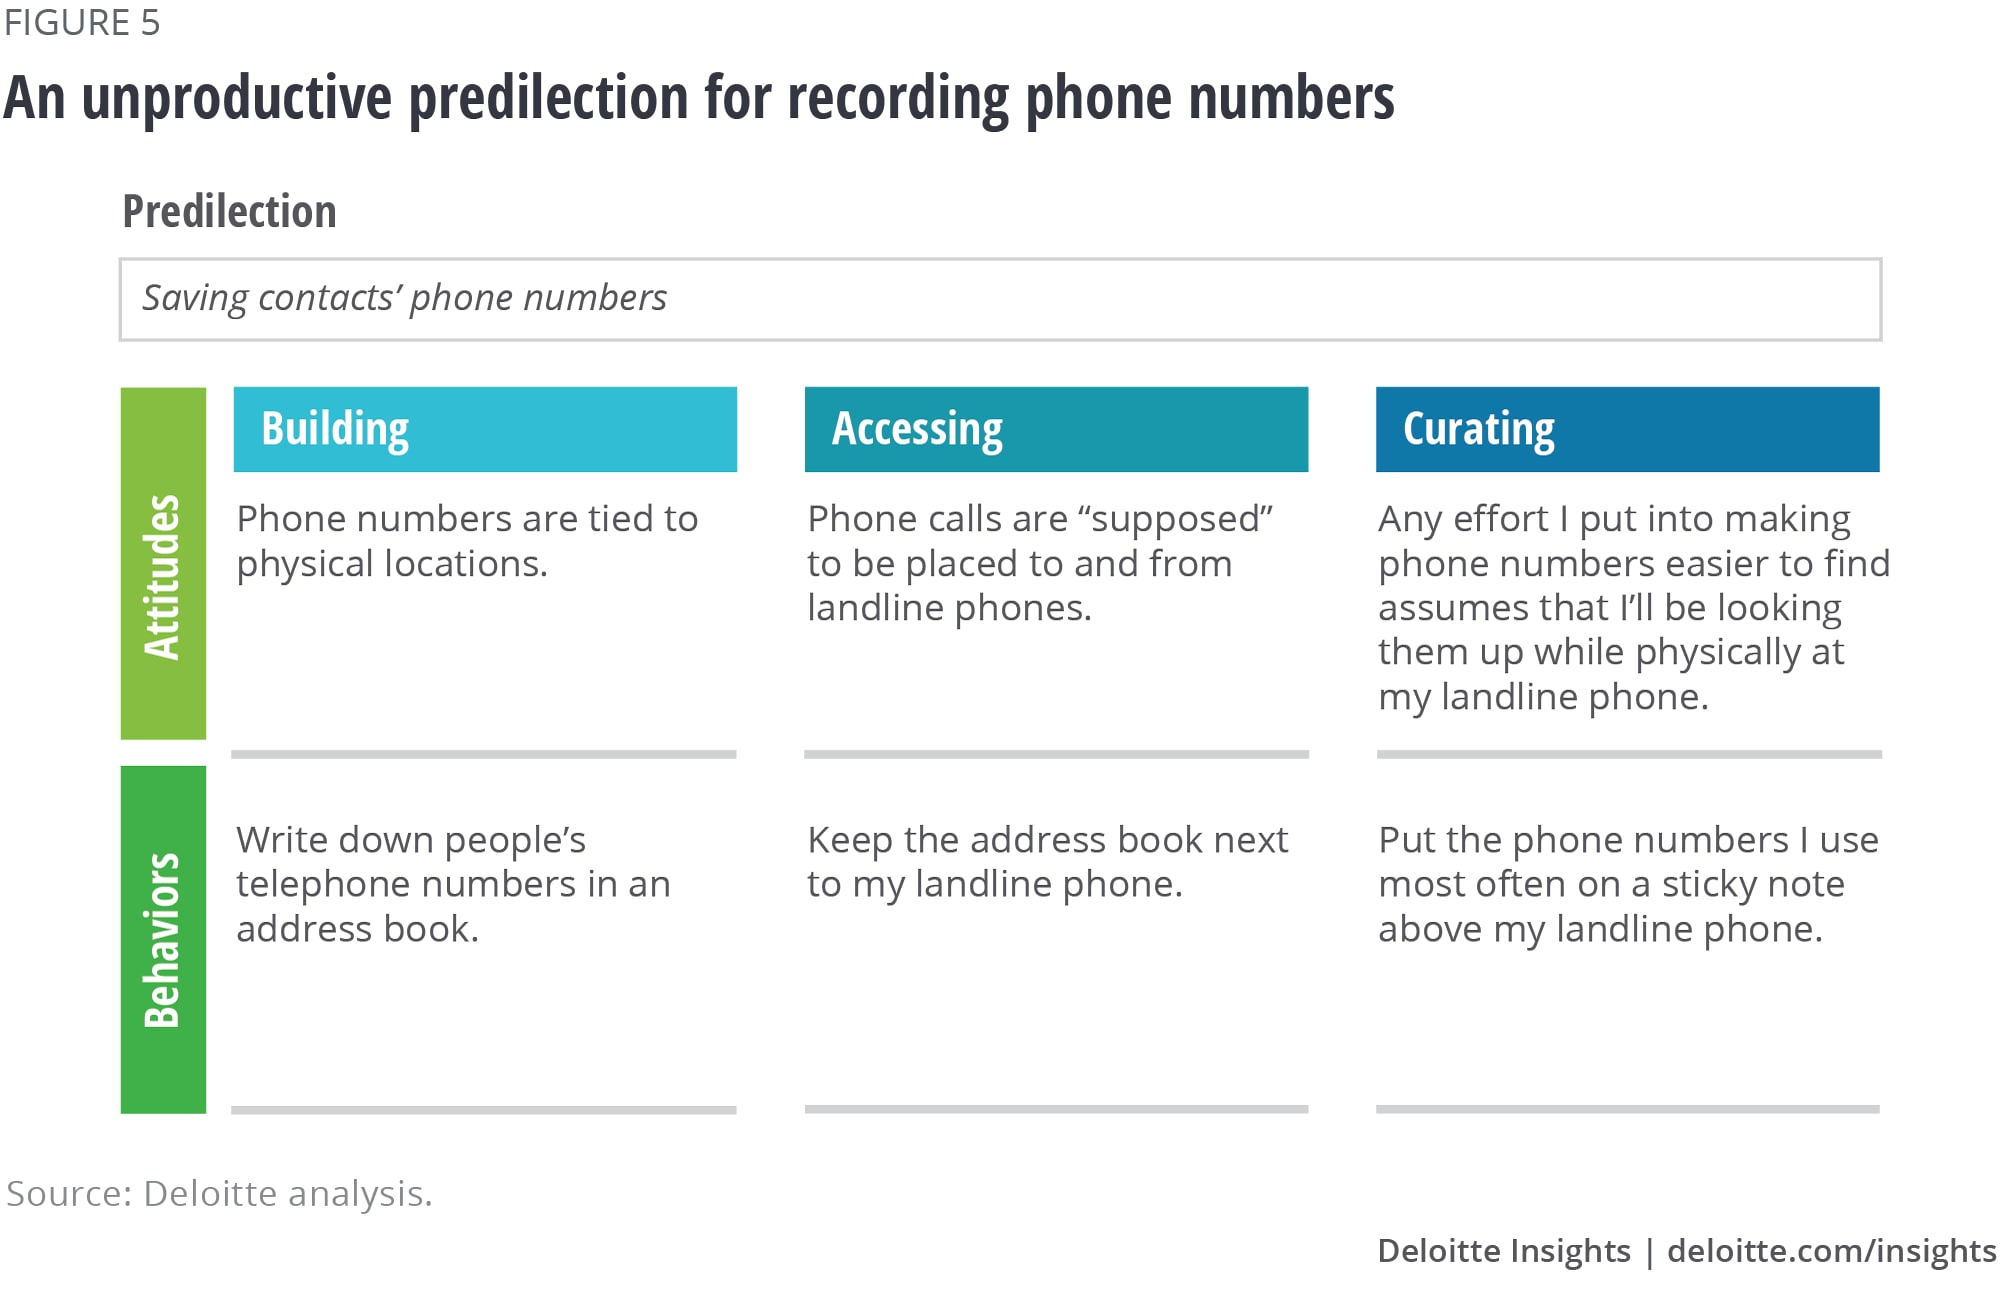 An unproductive predilection for recording phone numbers